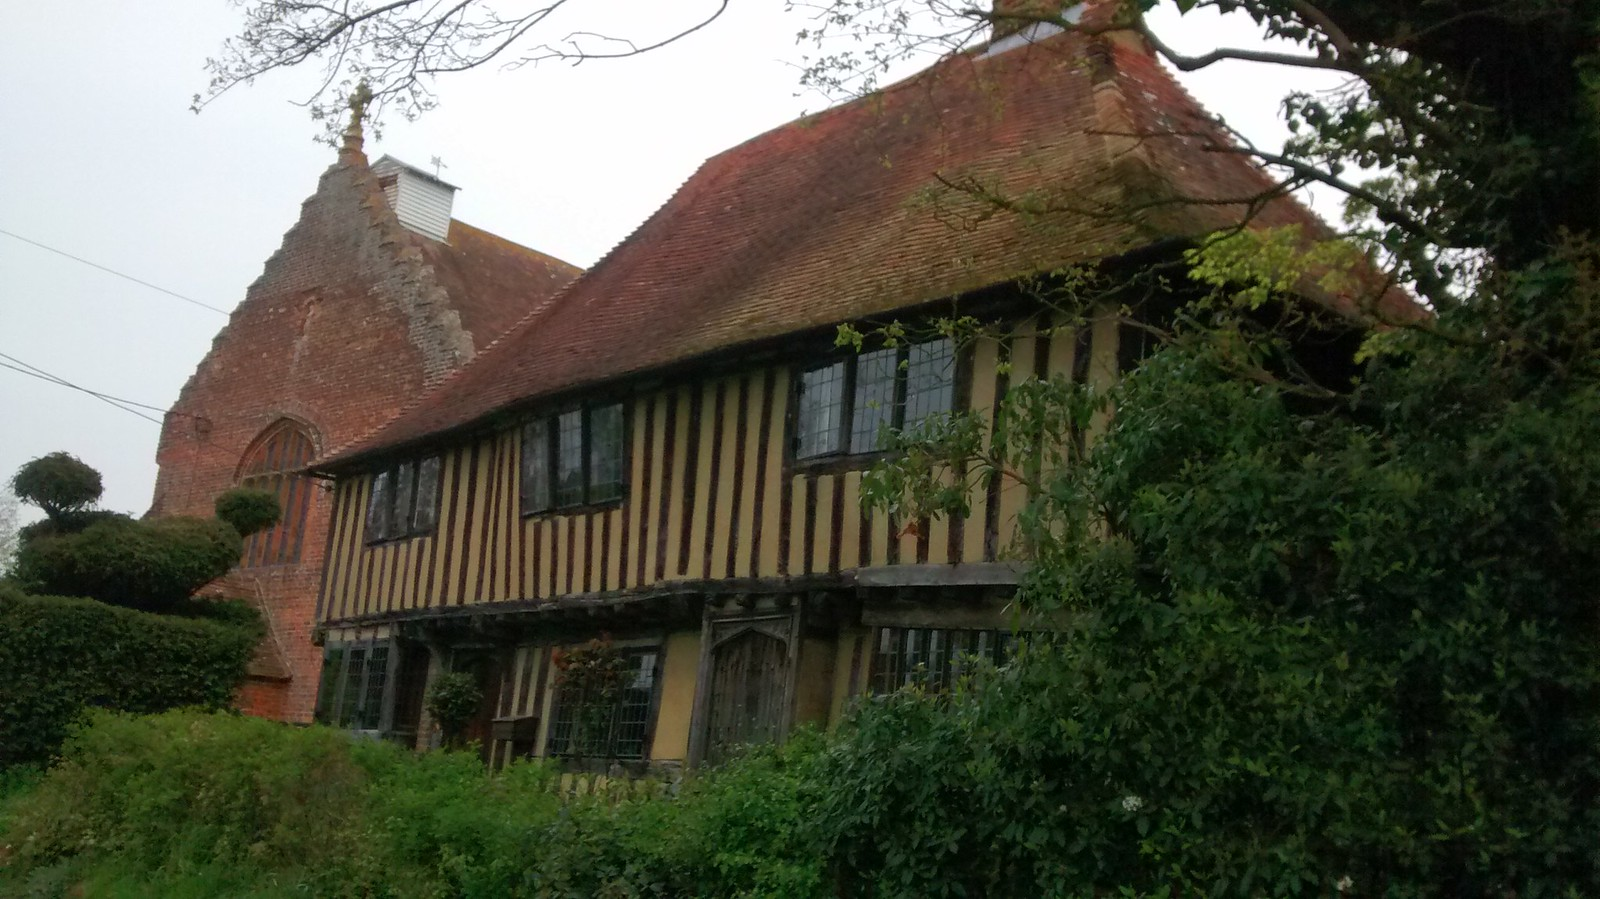 Hedge monster confronts 500 year old house Garden shed spotted on local Chapel